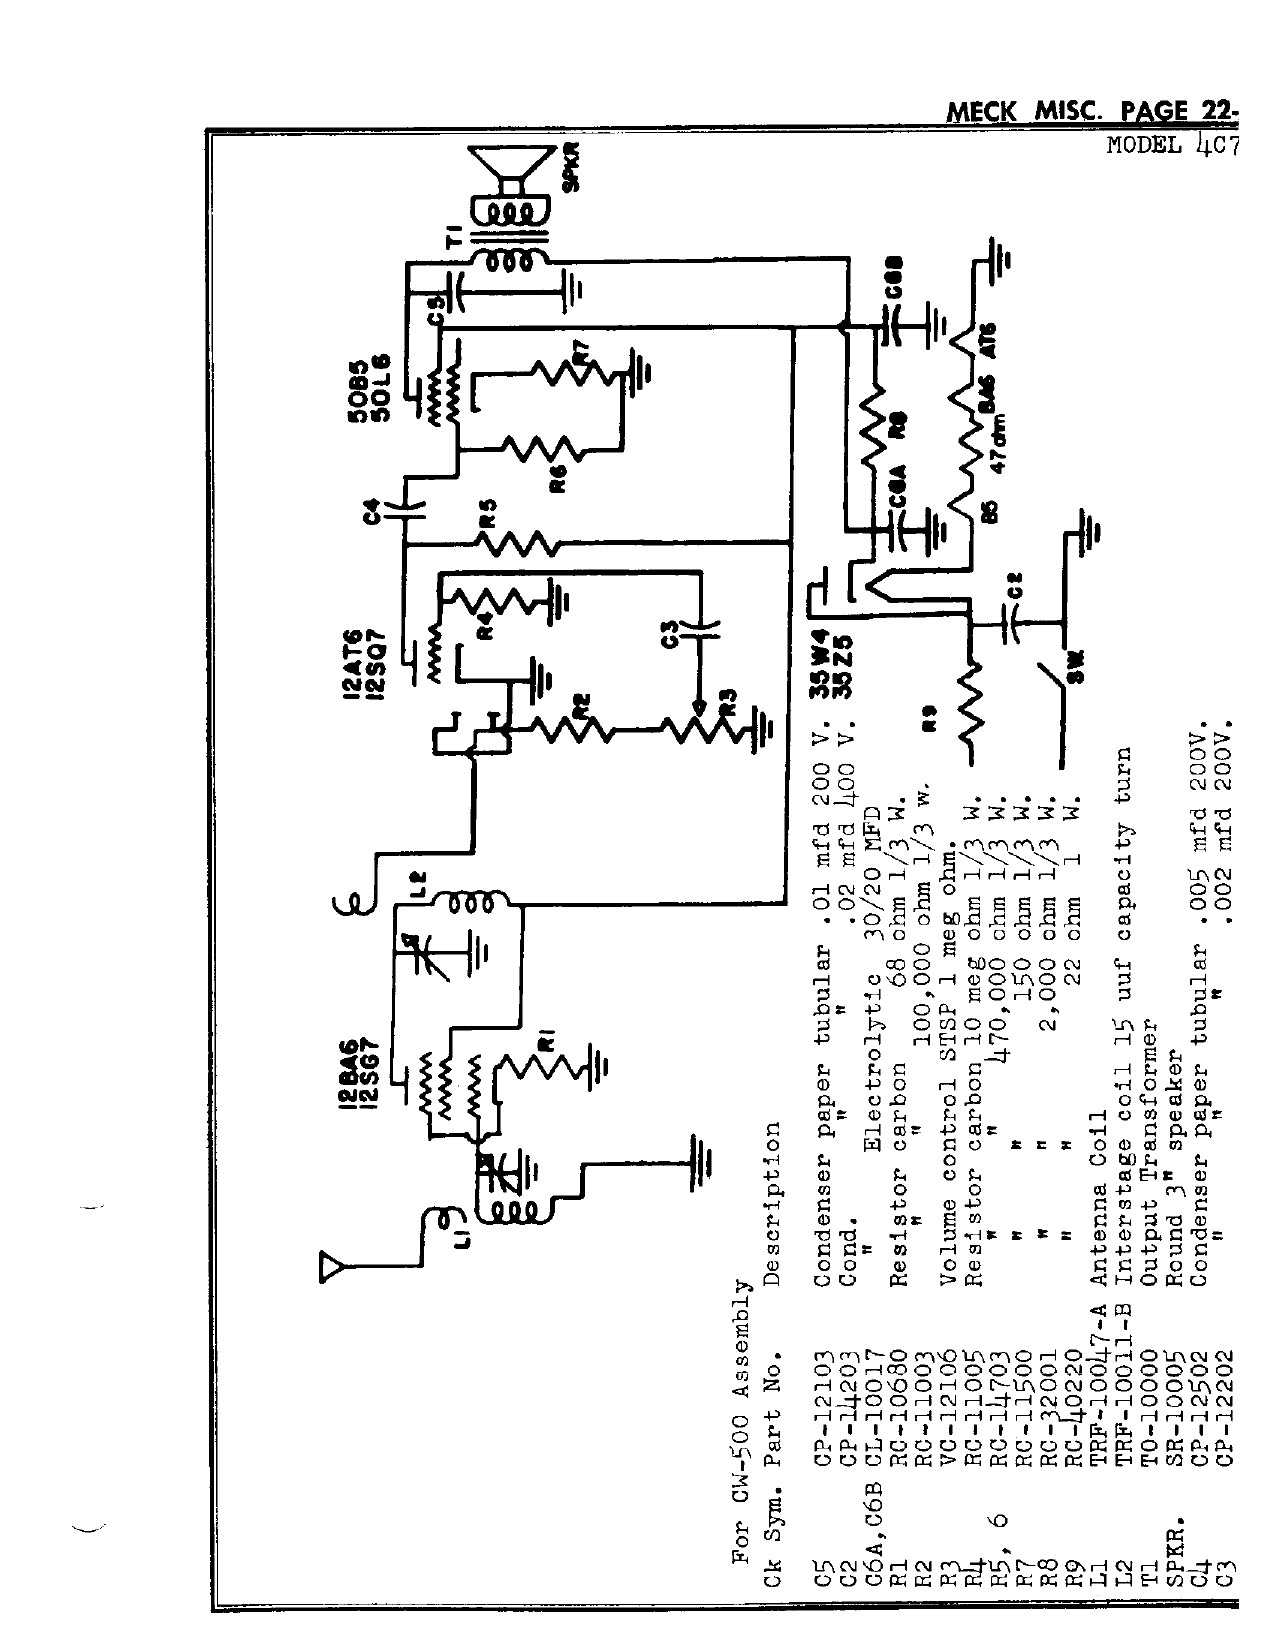 Gramin Wiring for Stricker 4 Eck Misc Page 22 Model 14 07 Of Gramin Wiring for Stricker 4